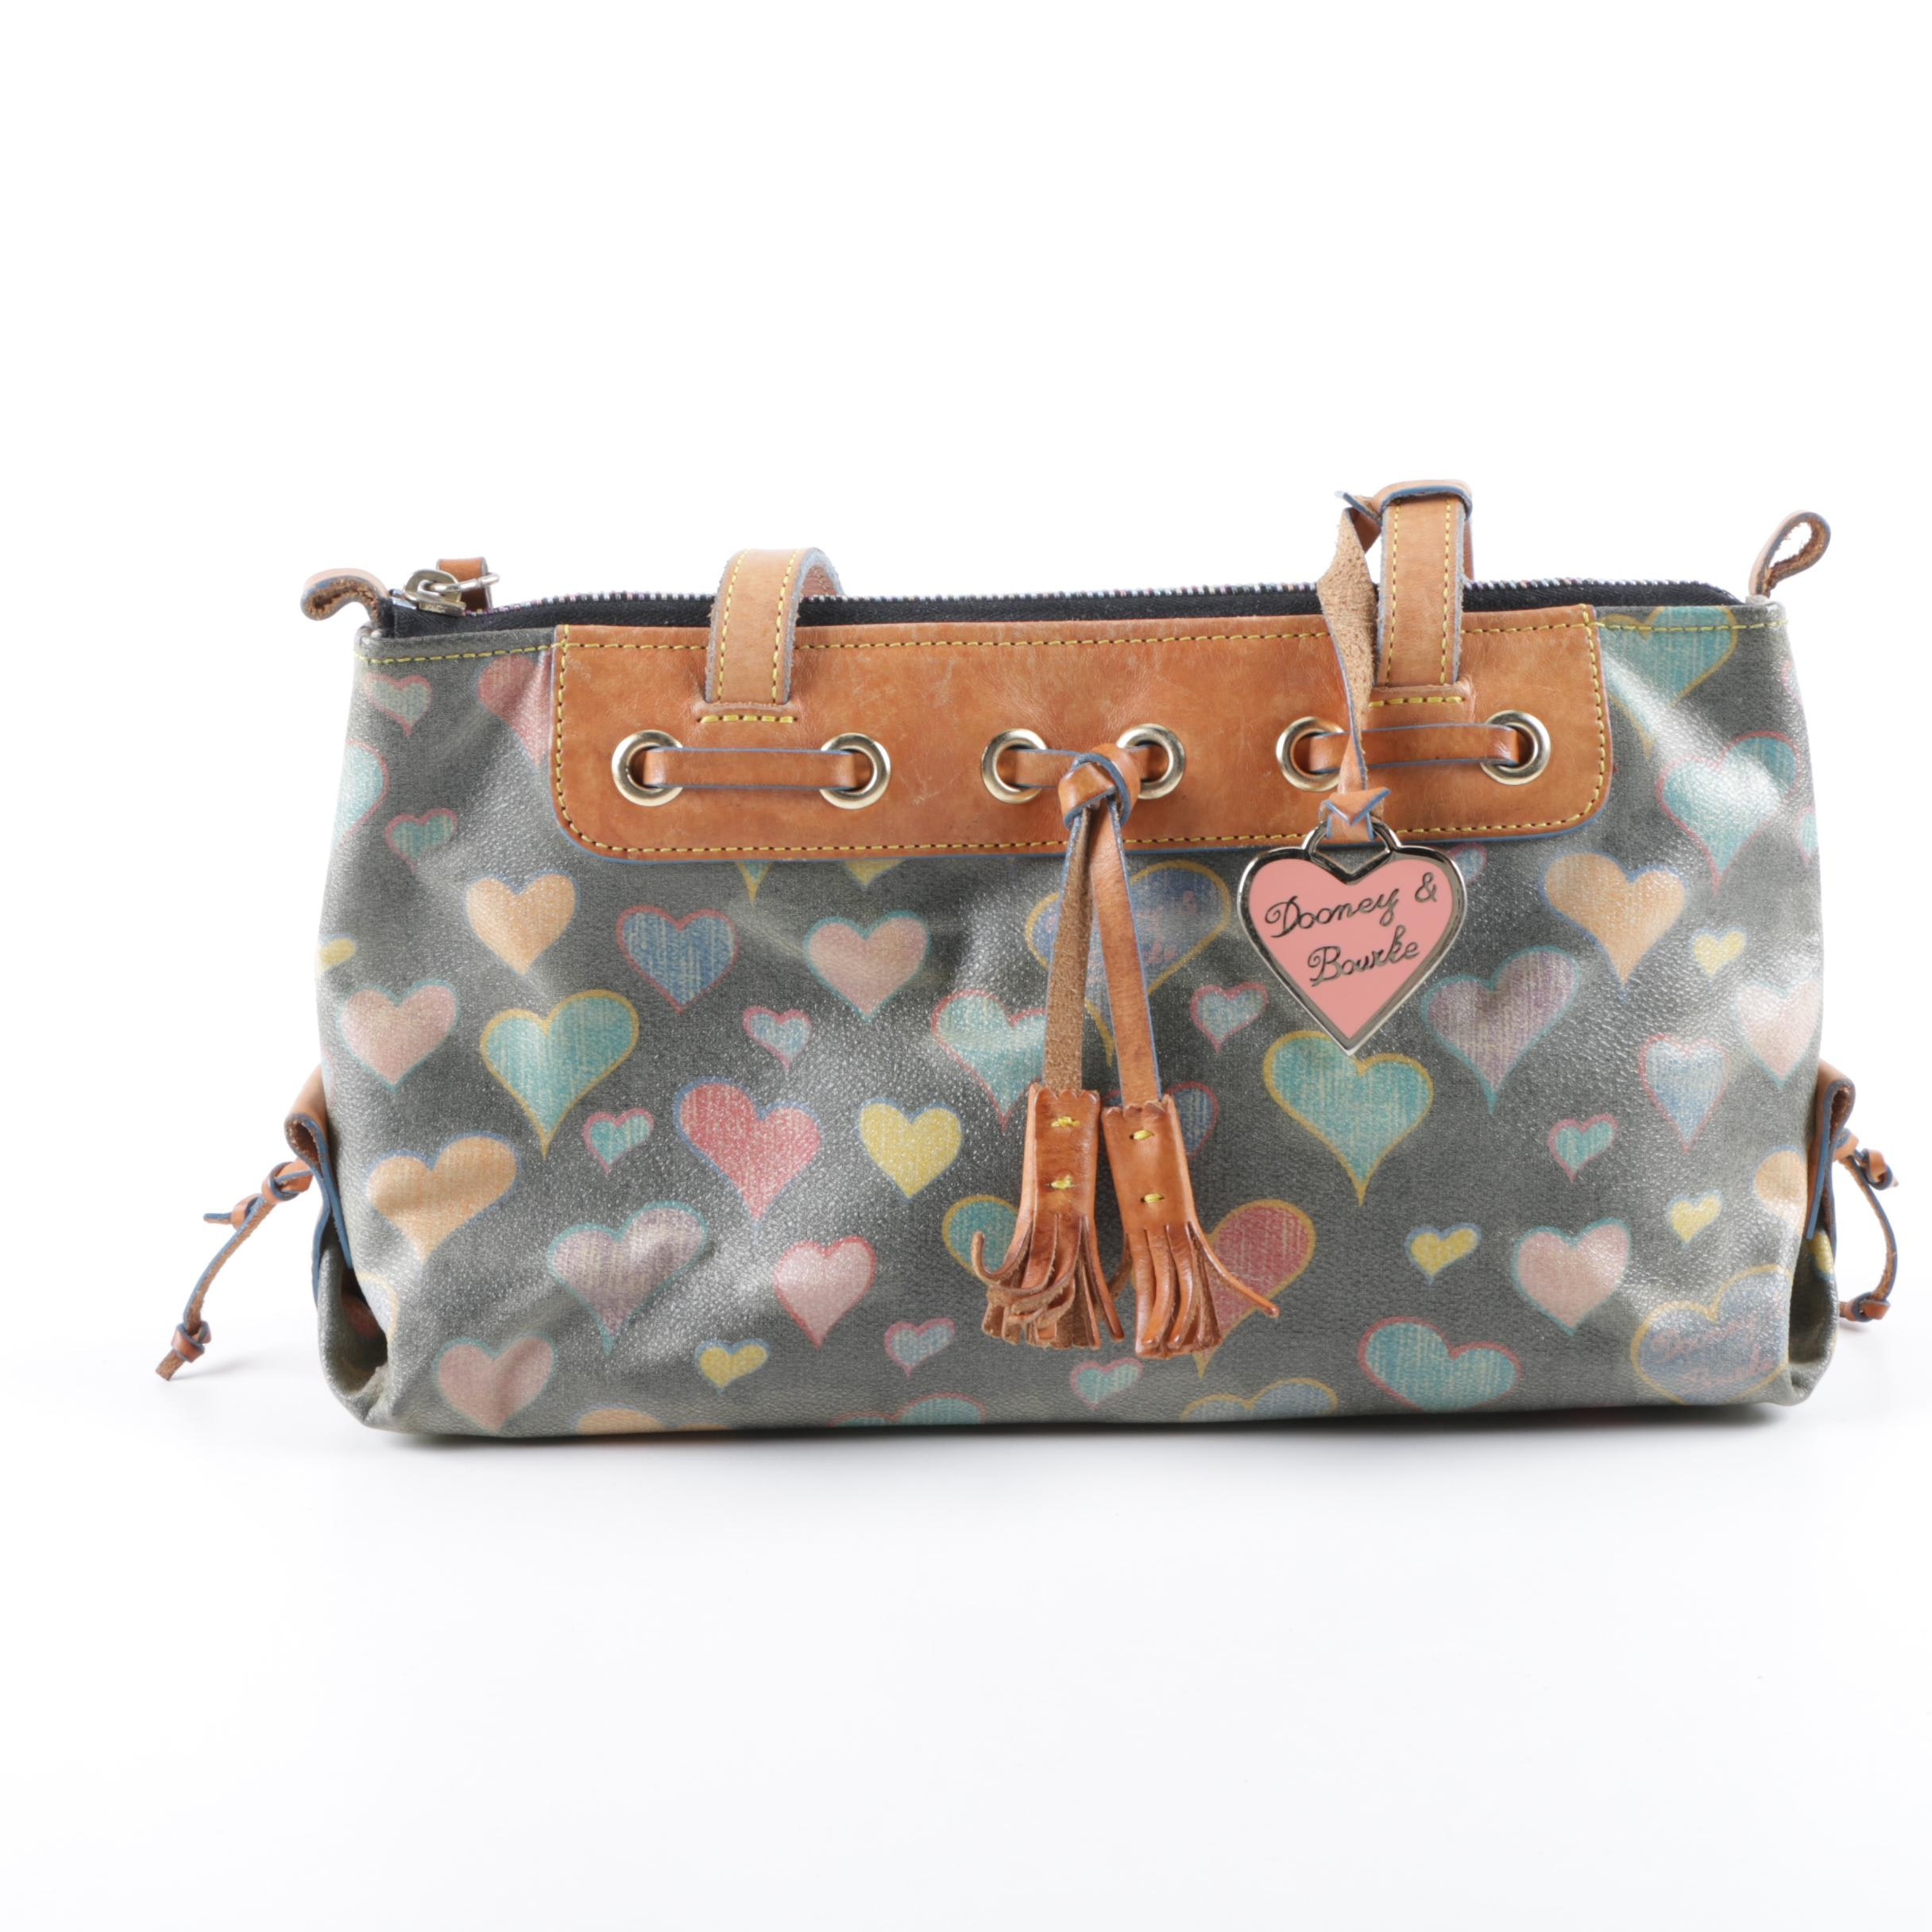 Dooney & Bourke Signature Heart Coated Canvas and Leather Trimmed Satchel